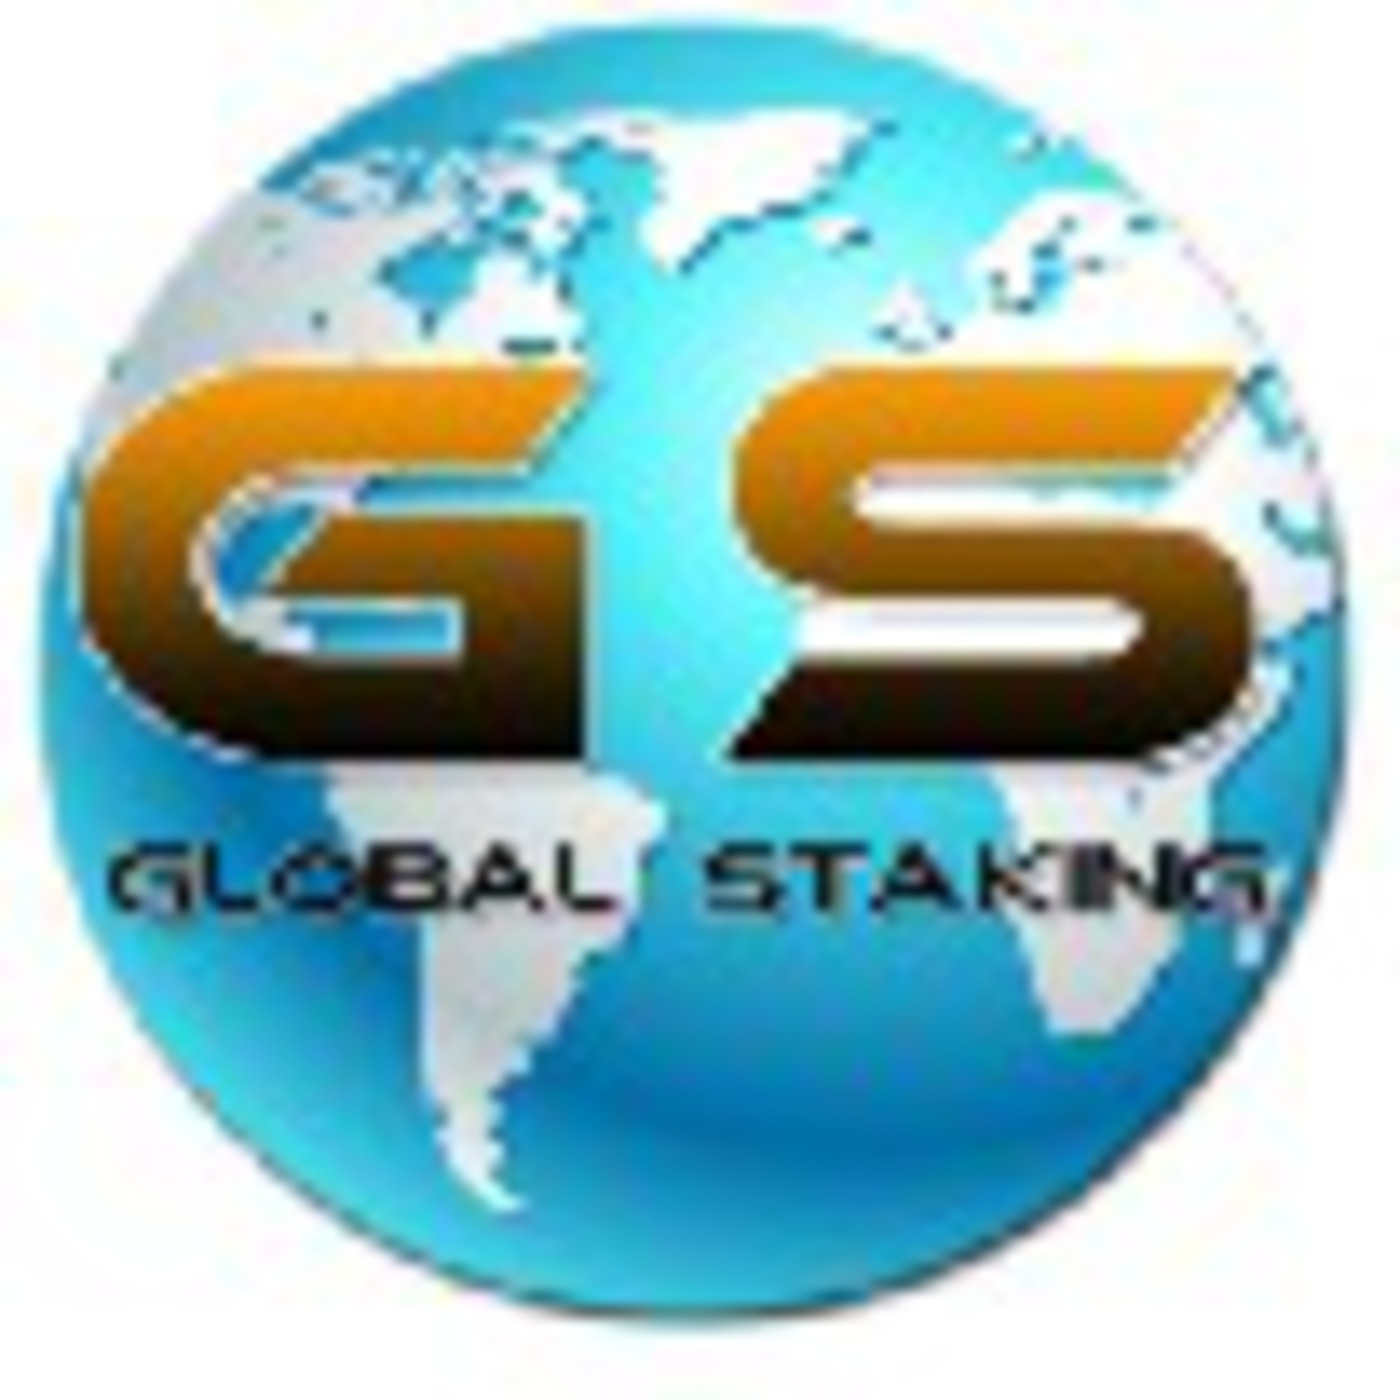 Global Staking Podcast